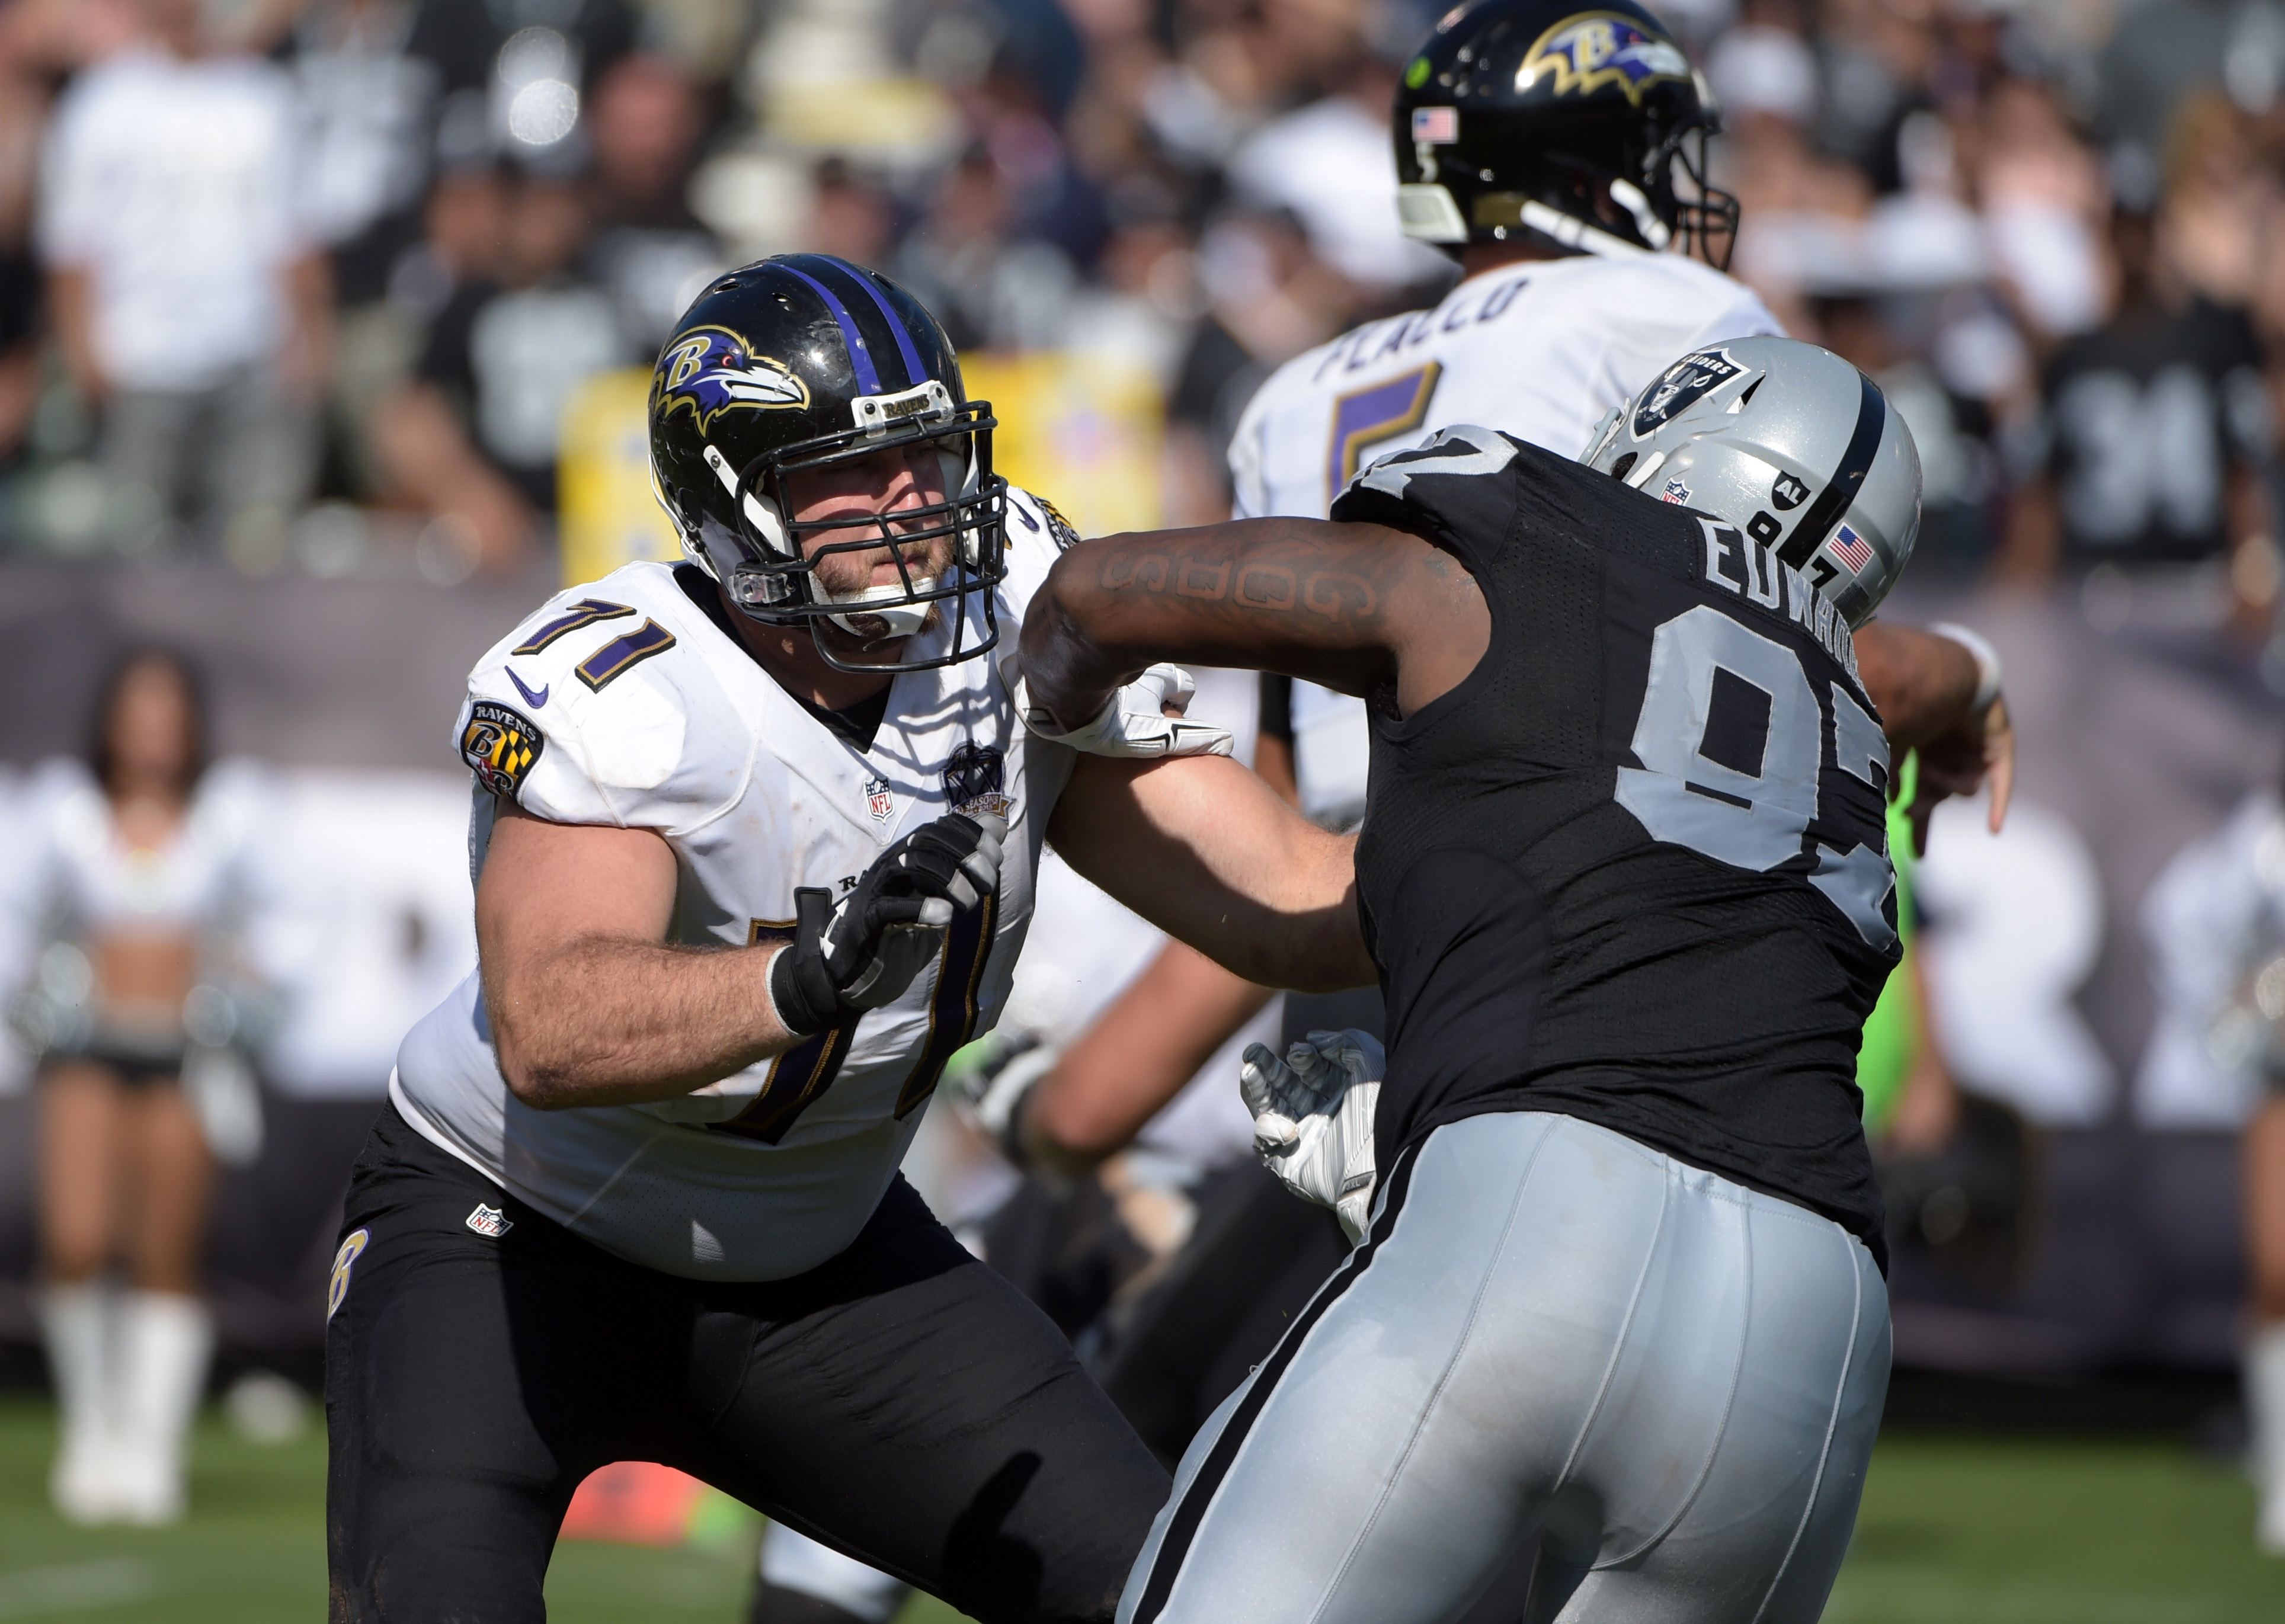 8822136-nfl-baltimore-ravens-at-oakland-raiders